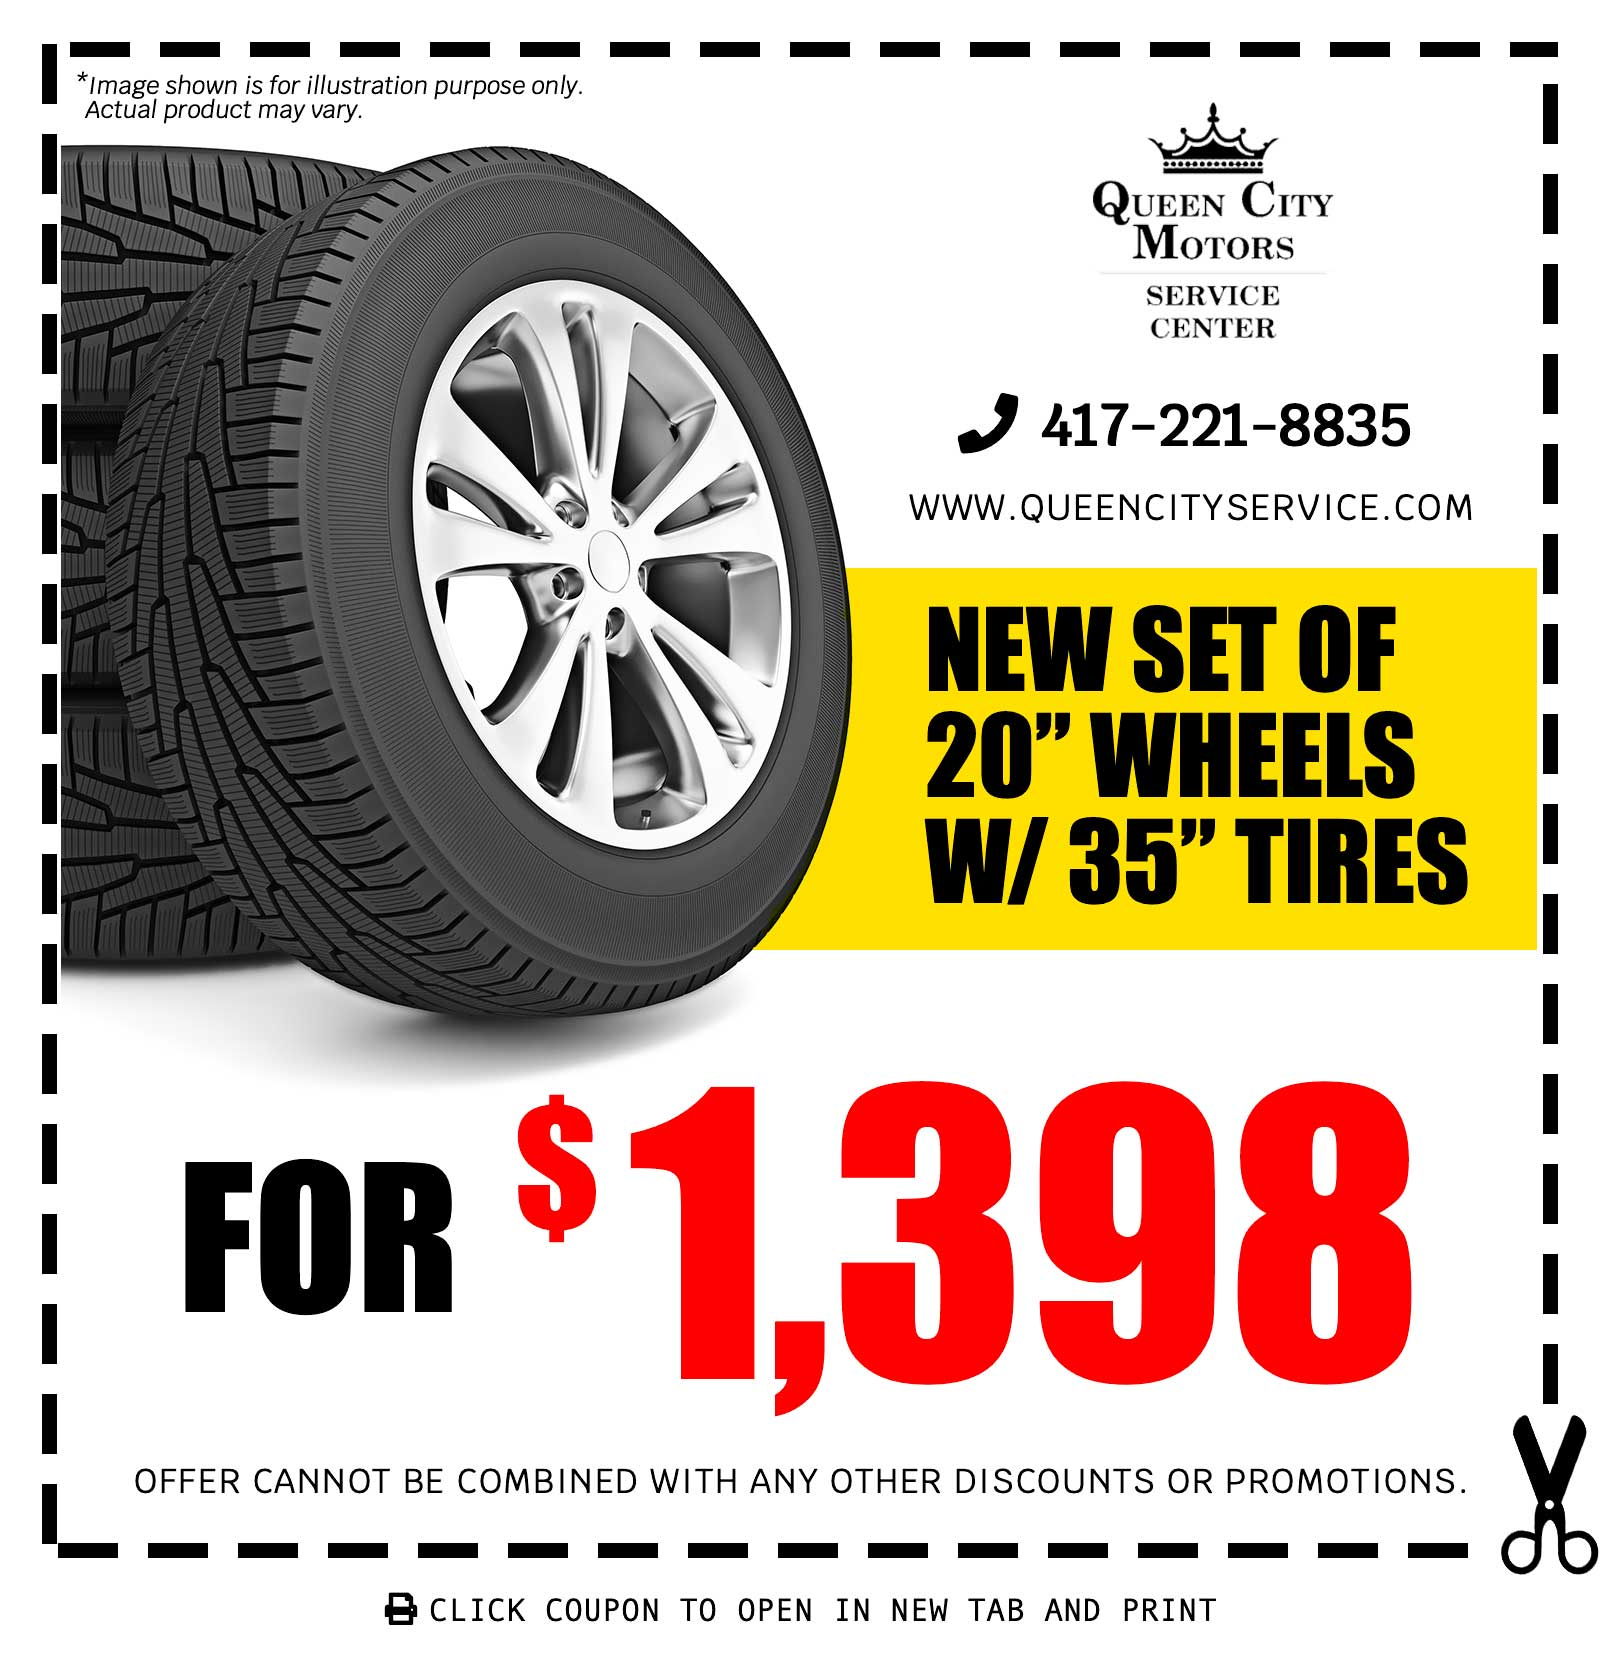 Wheels with Tires Coupon